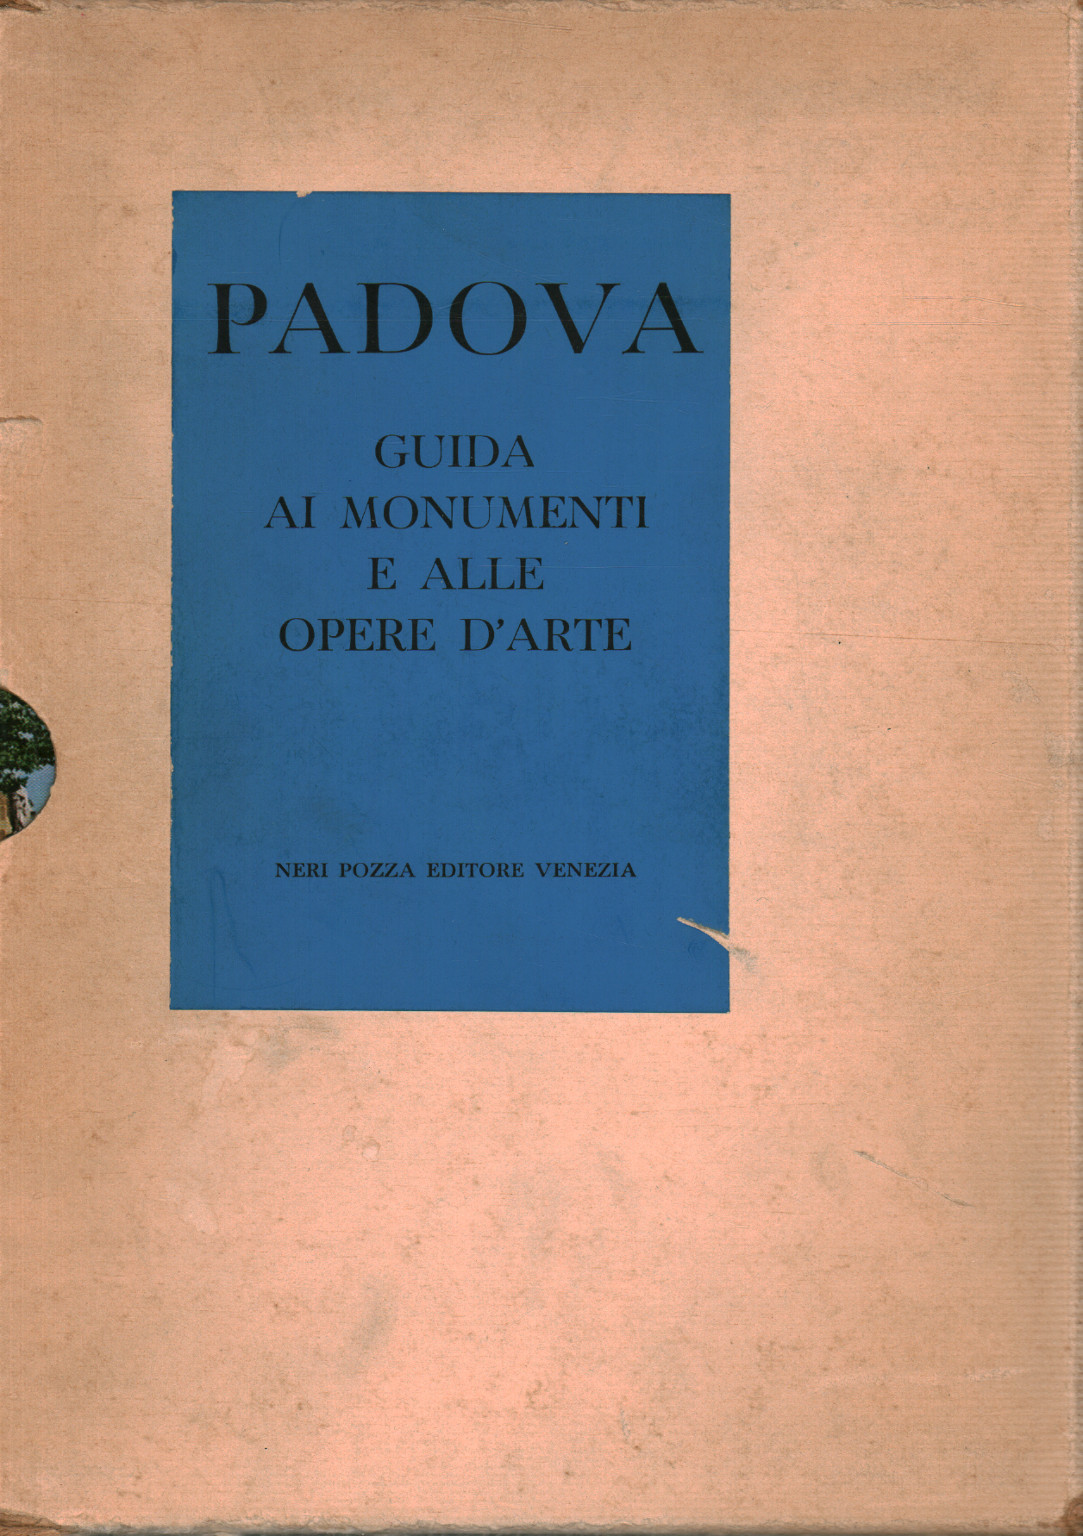 Padua. Guide to the monuments and works of art, s.a.